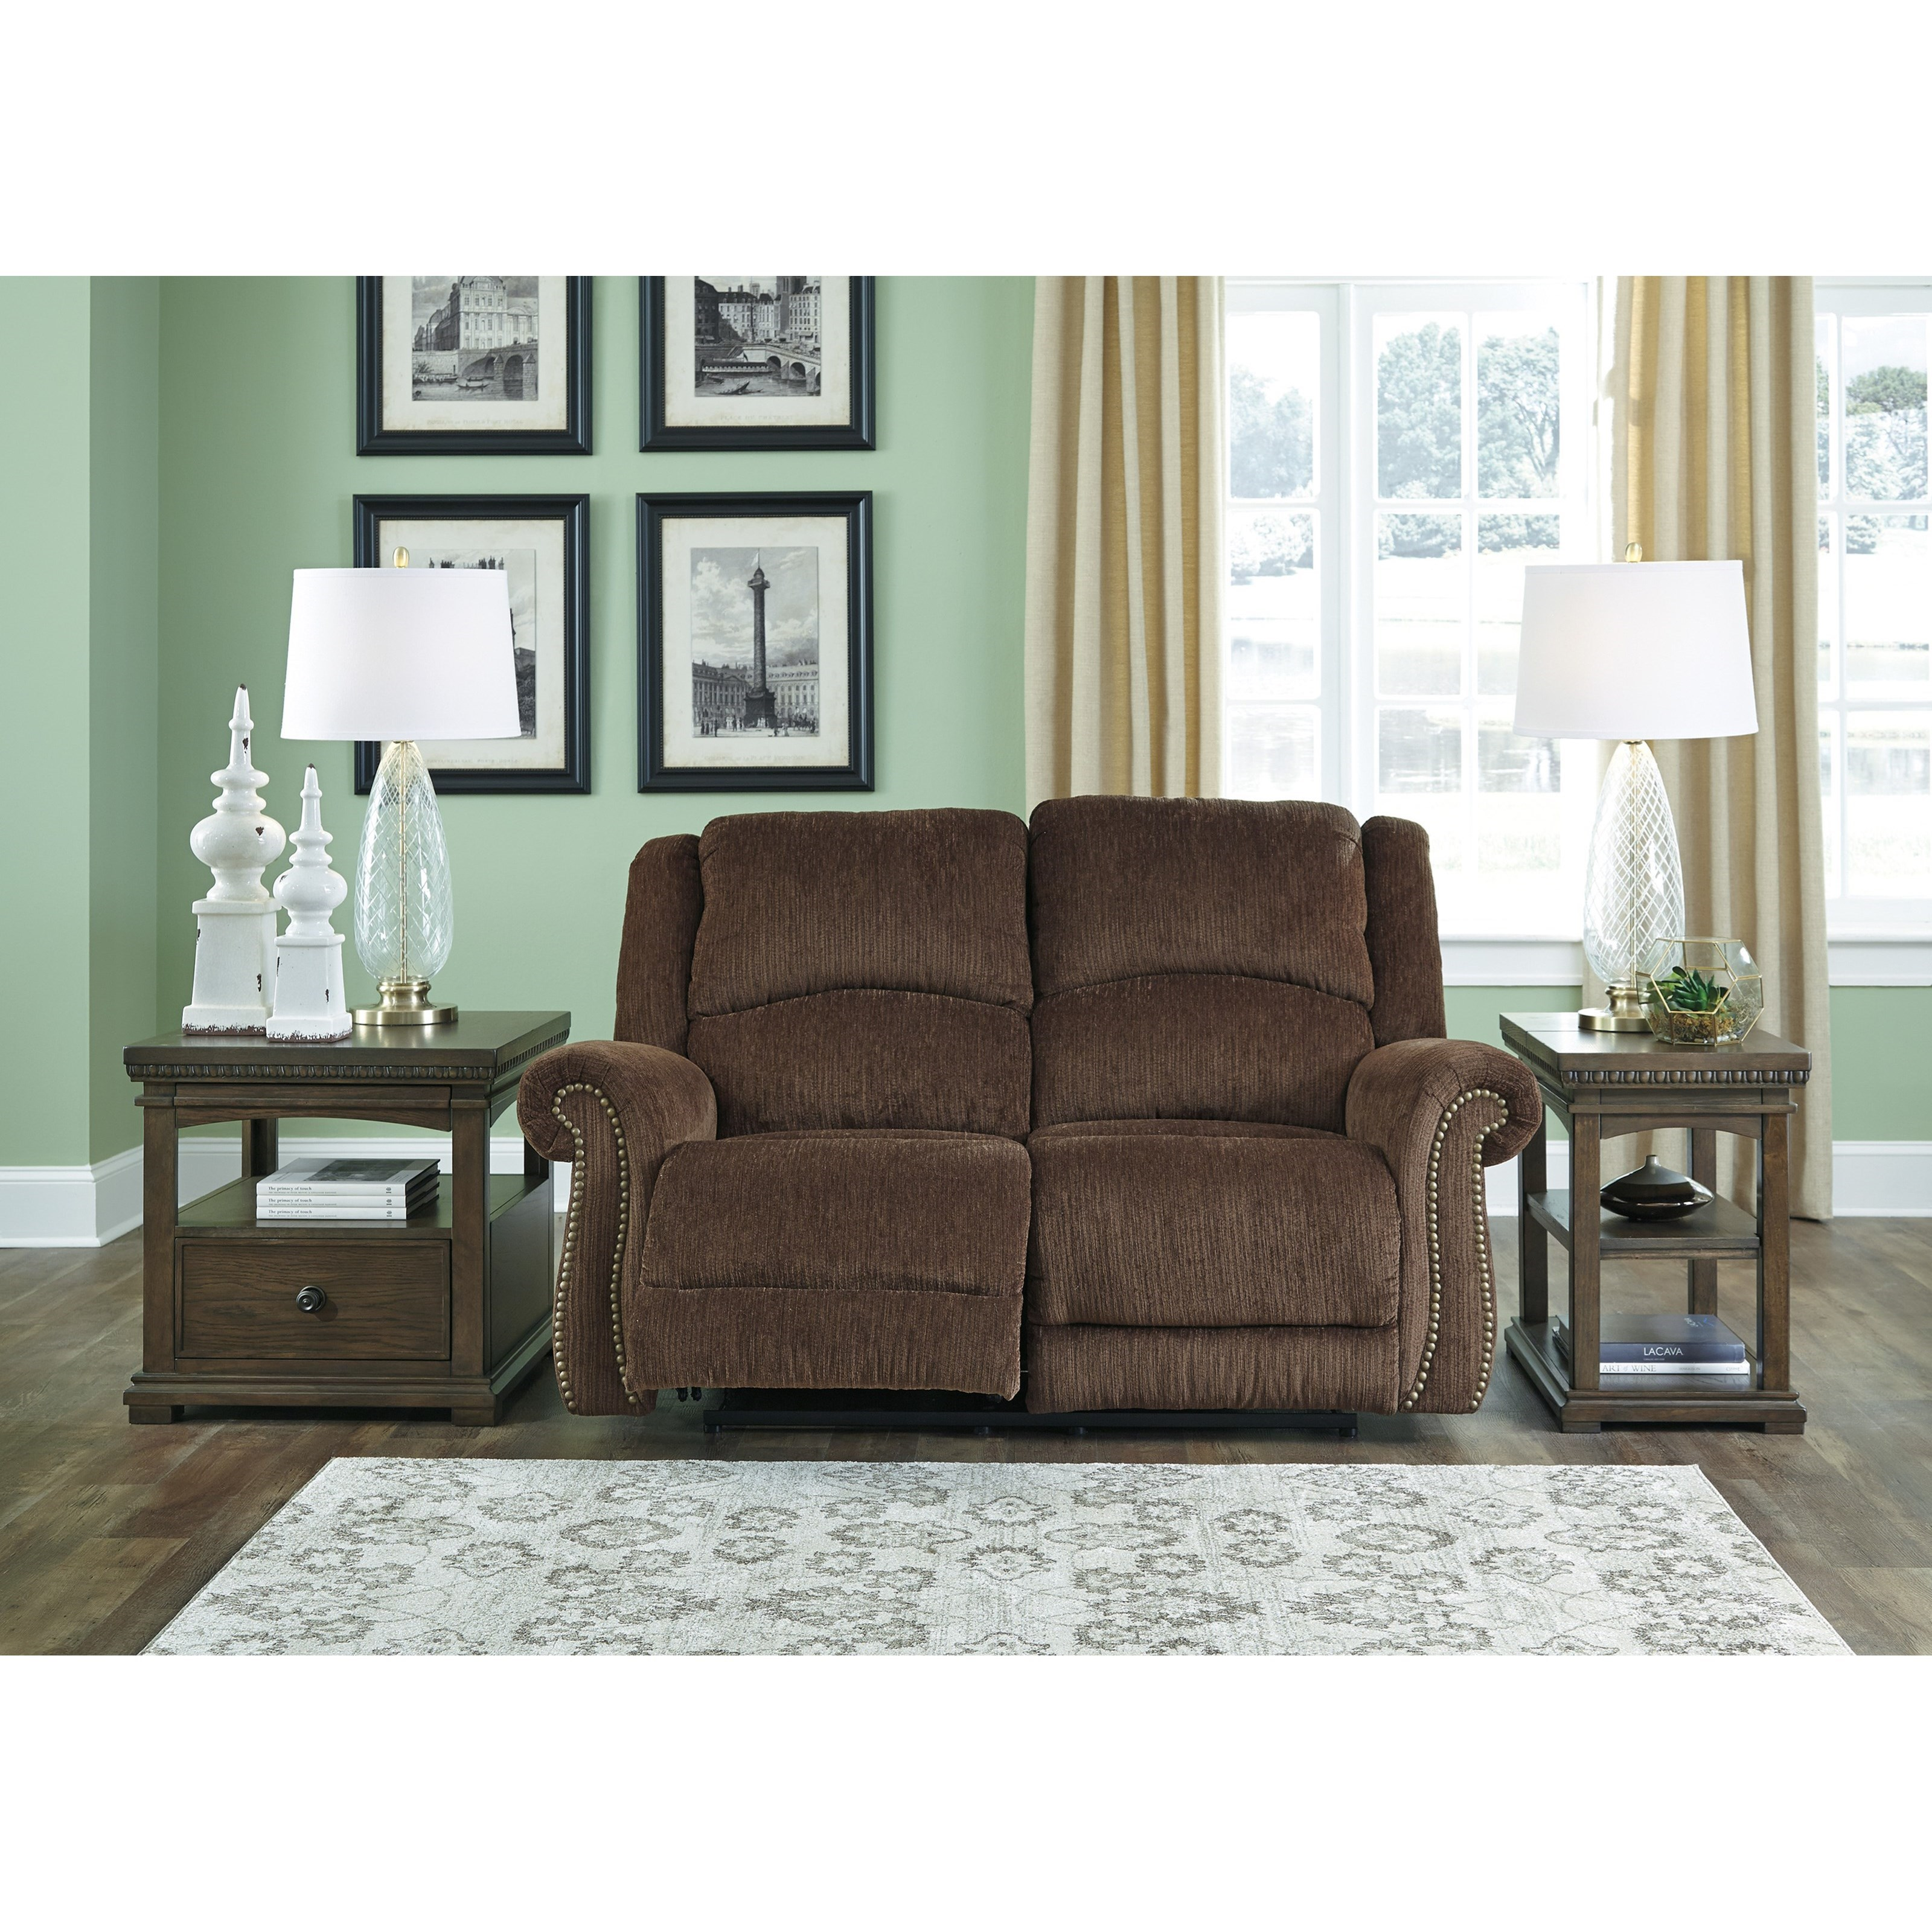 Signature Design By Ashley Goodlow Transitional Power Reclining Loveseat W Adj Headrests Usb